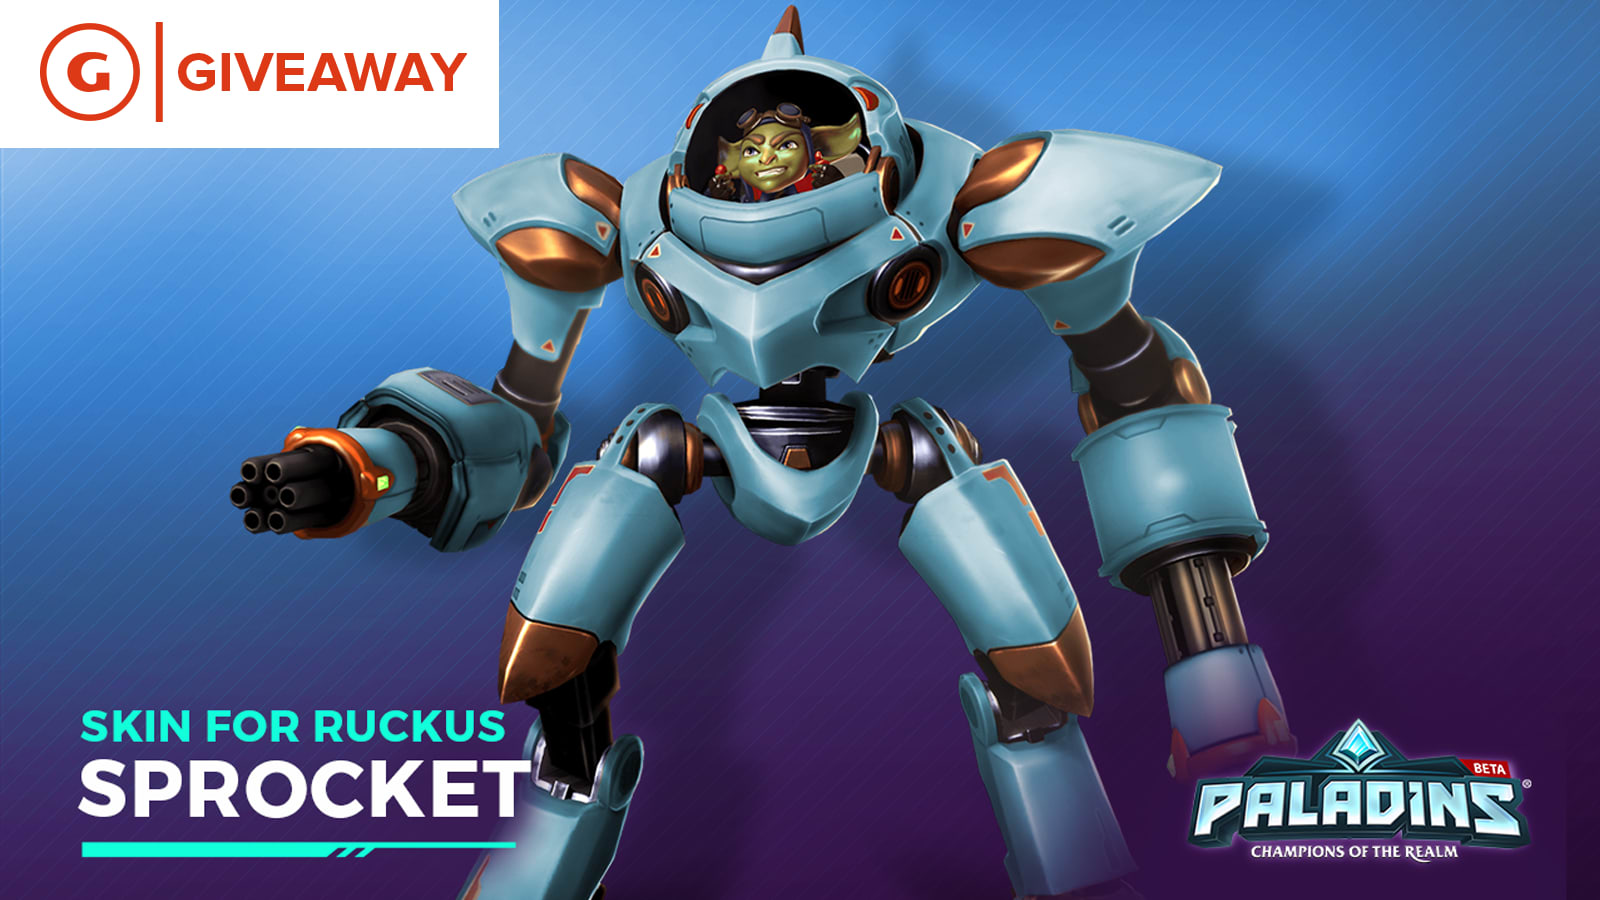 Paladins Sprocket Ruckus Skin Giveaway (PC/PS4/Xbox One) - GameSpot